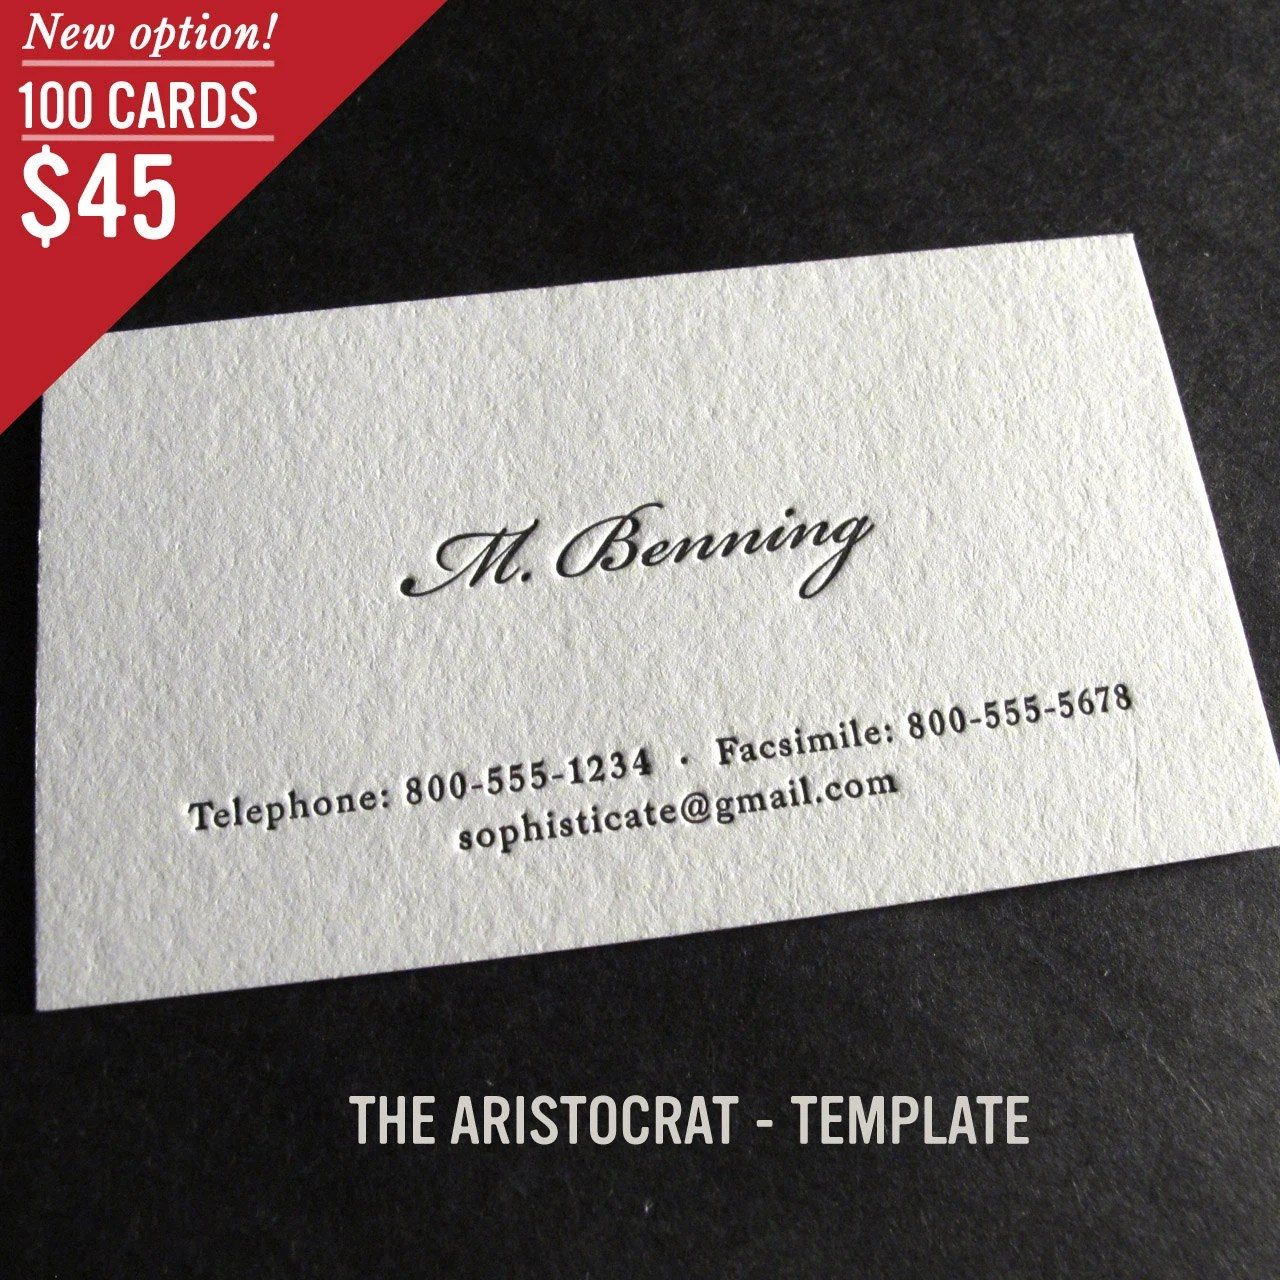 100 Custom Letterpress Business Cards The Aristocrat Etsy